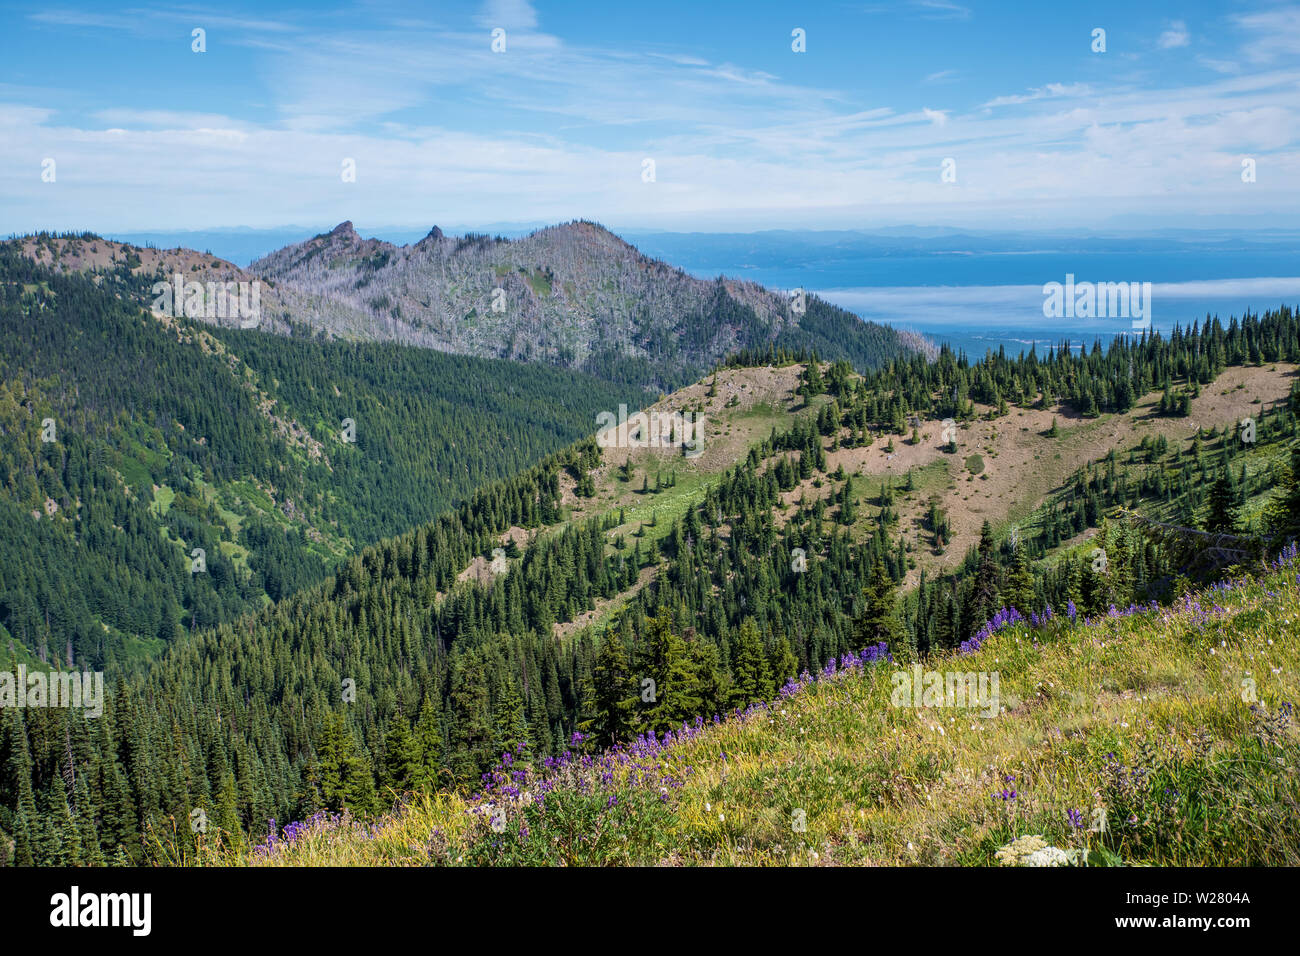 Hurricane Ridge, Olympic National Park, Washington, USA.  View of mountains with lupine wildflowers and Pacific Ocean from a hiking trail. - Stock Image